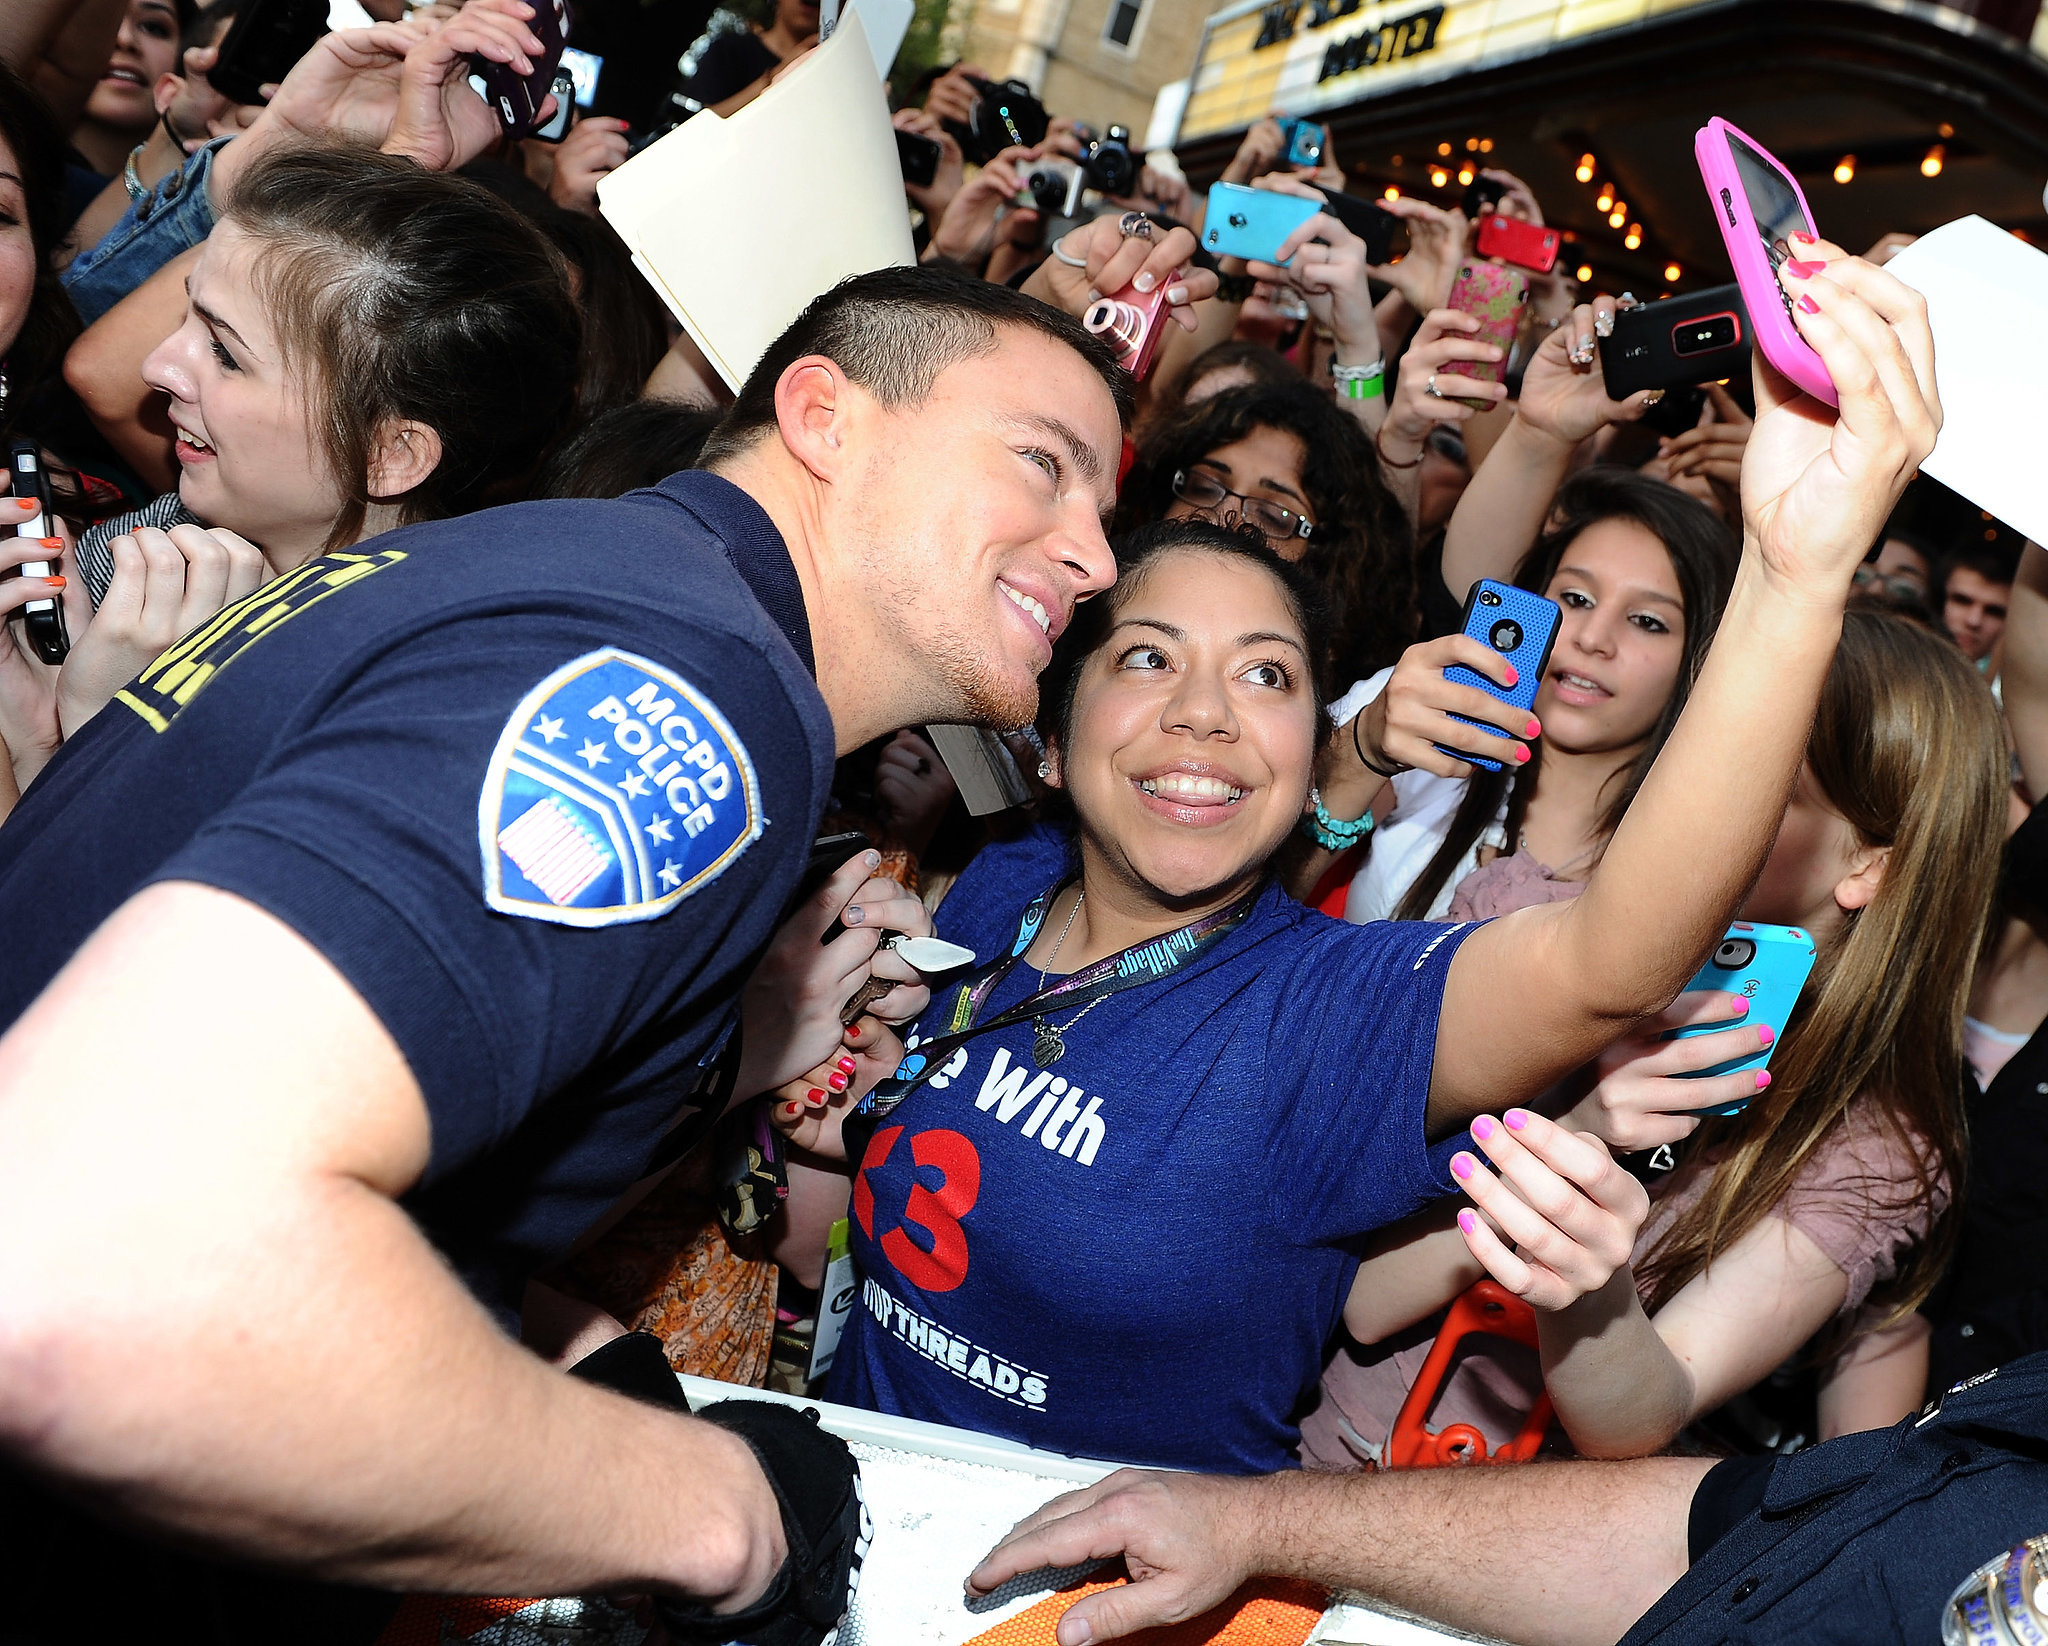 Also, He's Sweet With Fans